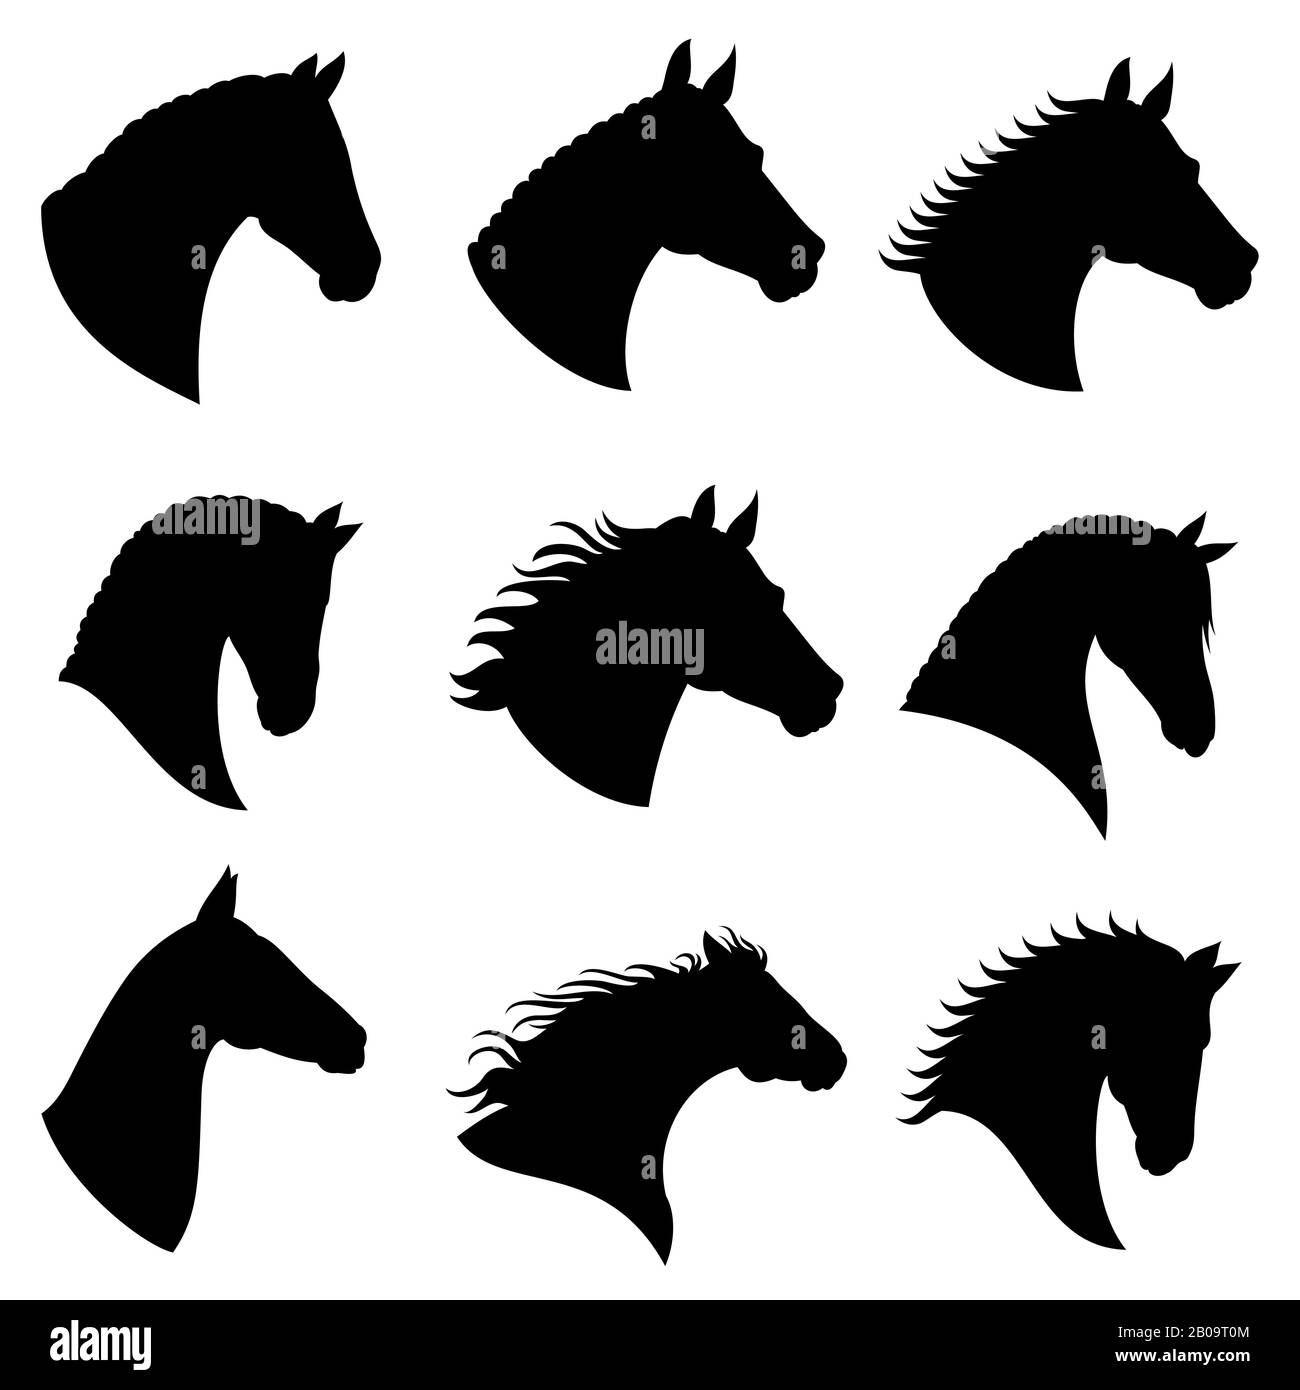 Horse Head Vector Silhouettes Black Silhouette Head Horse Illustration Of Head Wild Stallion Stock Vector Image Art Alamy